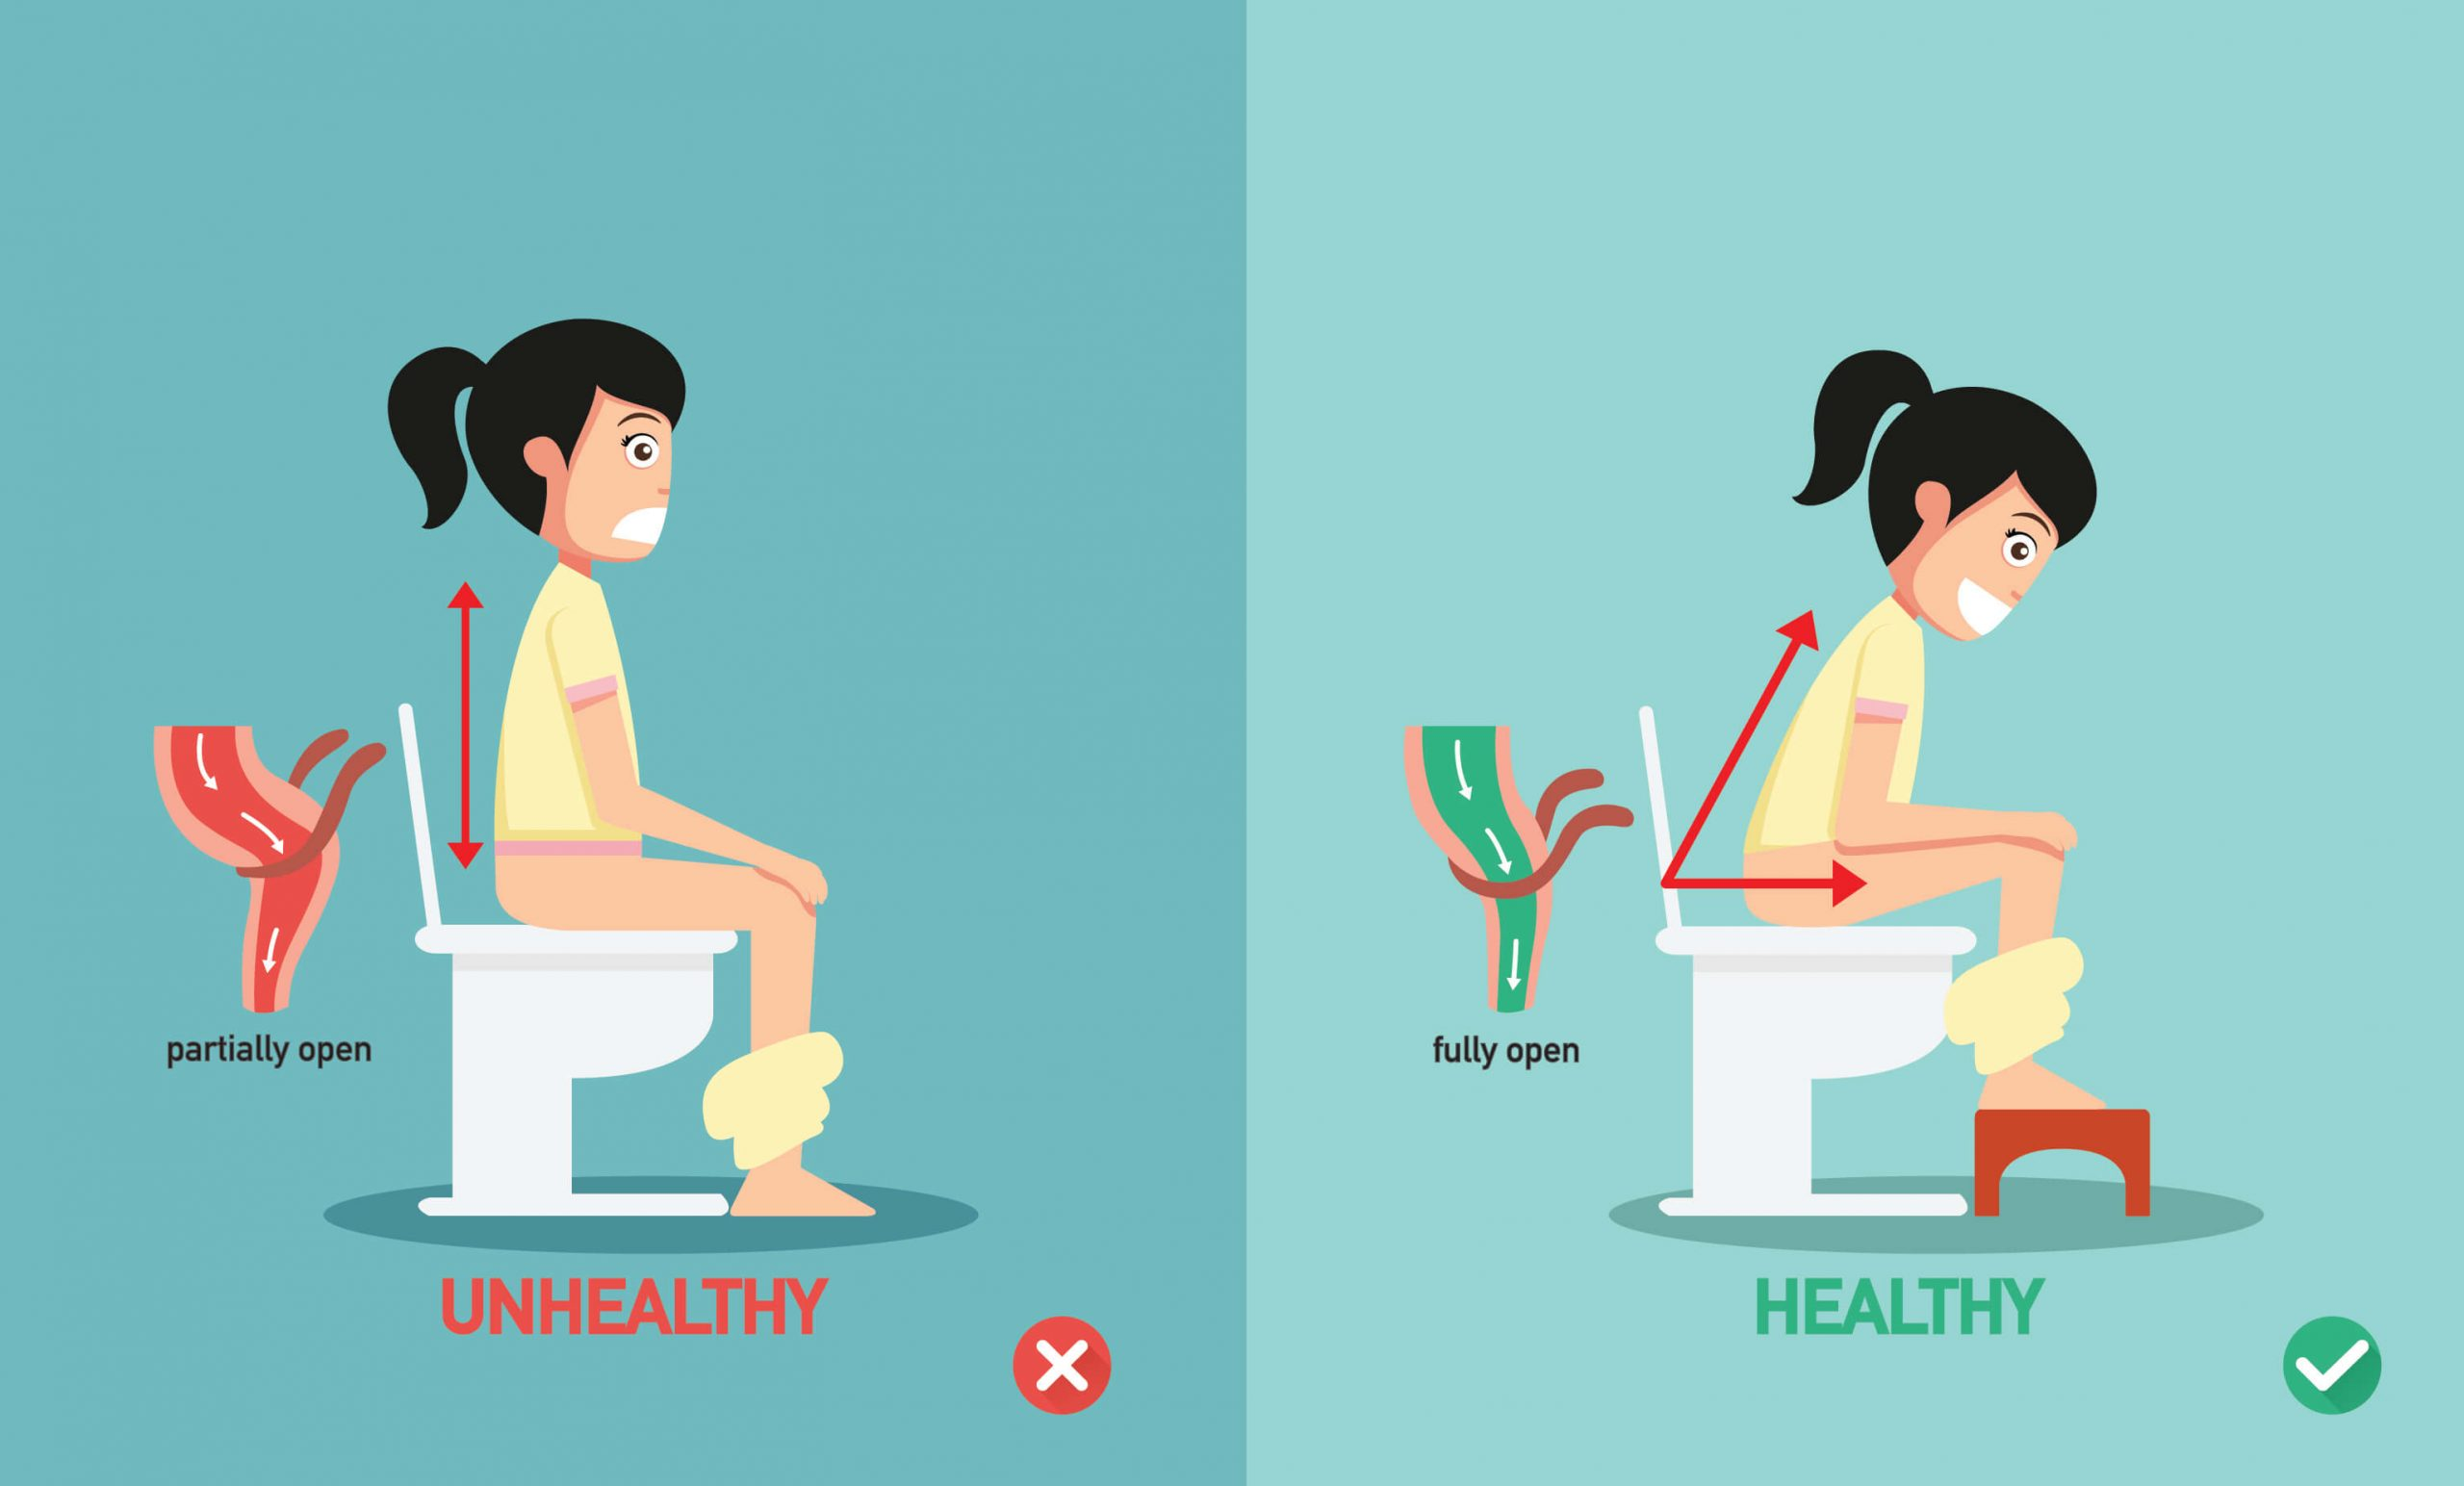 right and wrong way of sitting on toilet